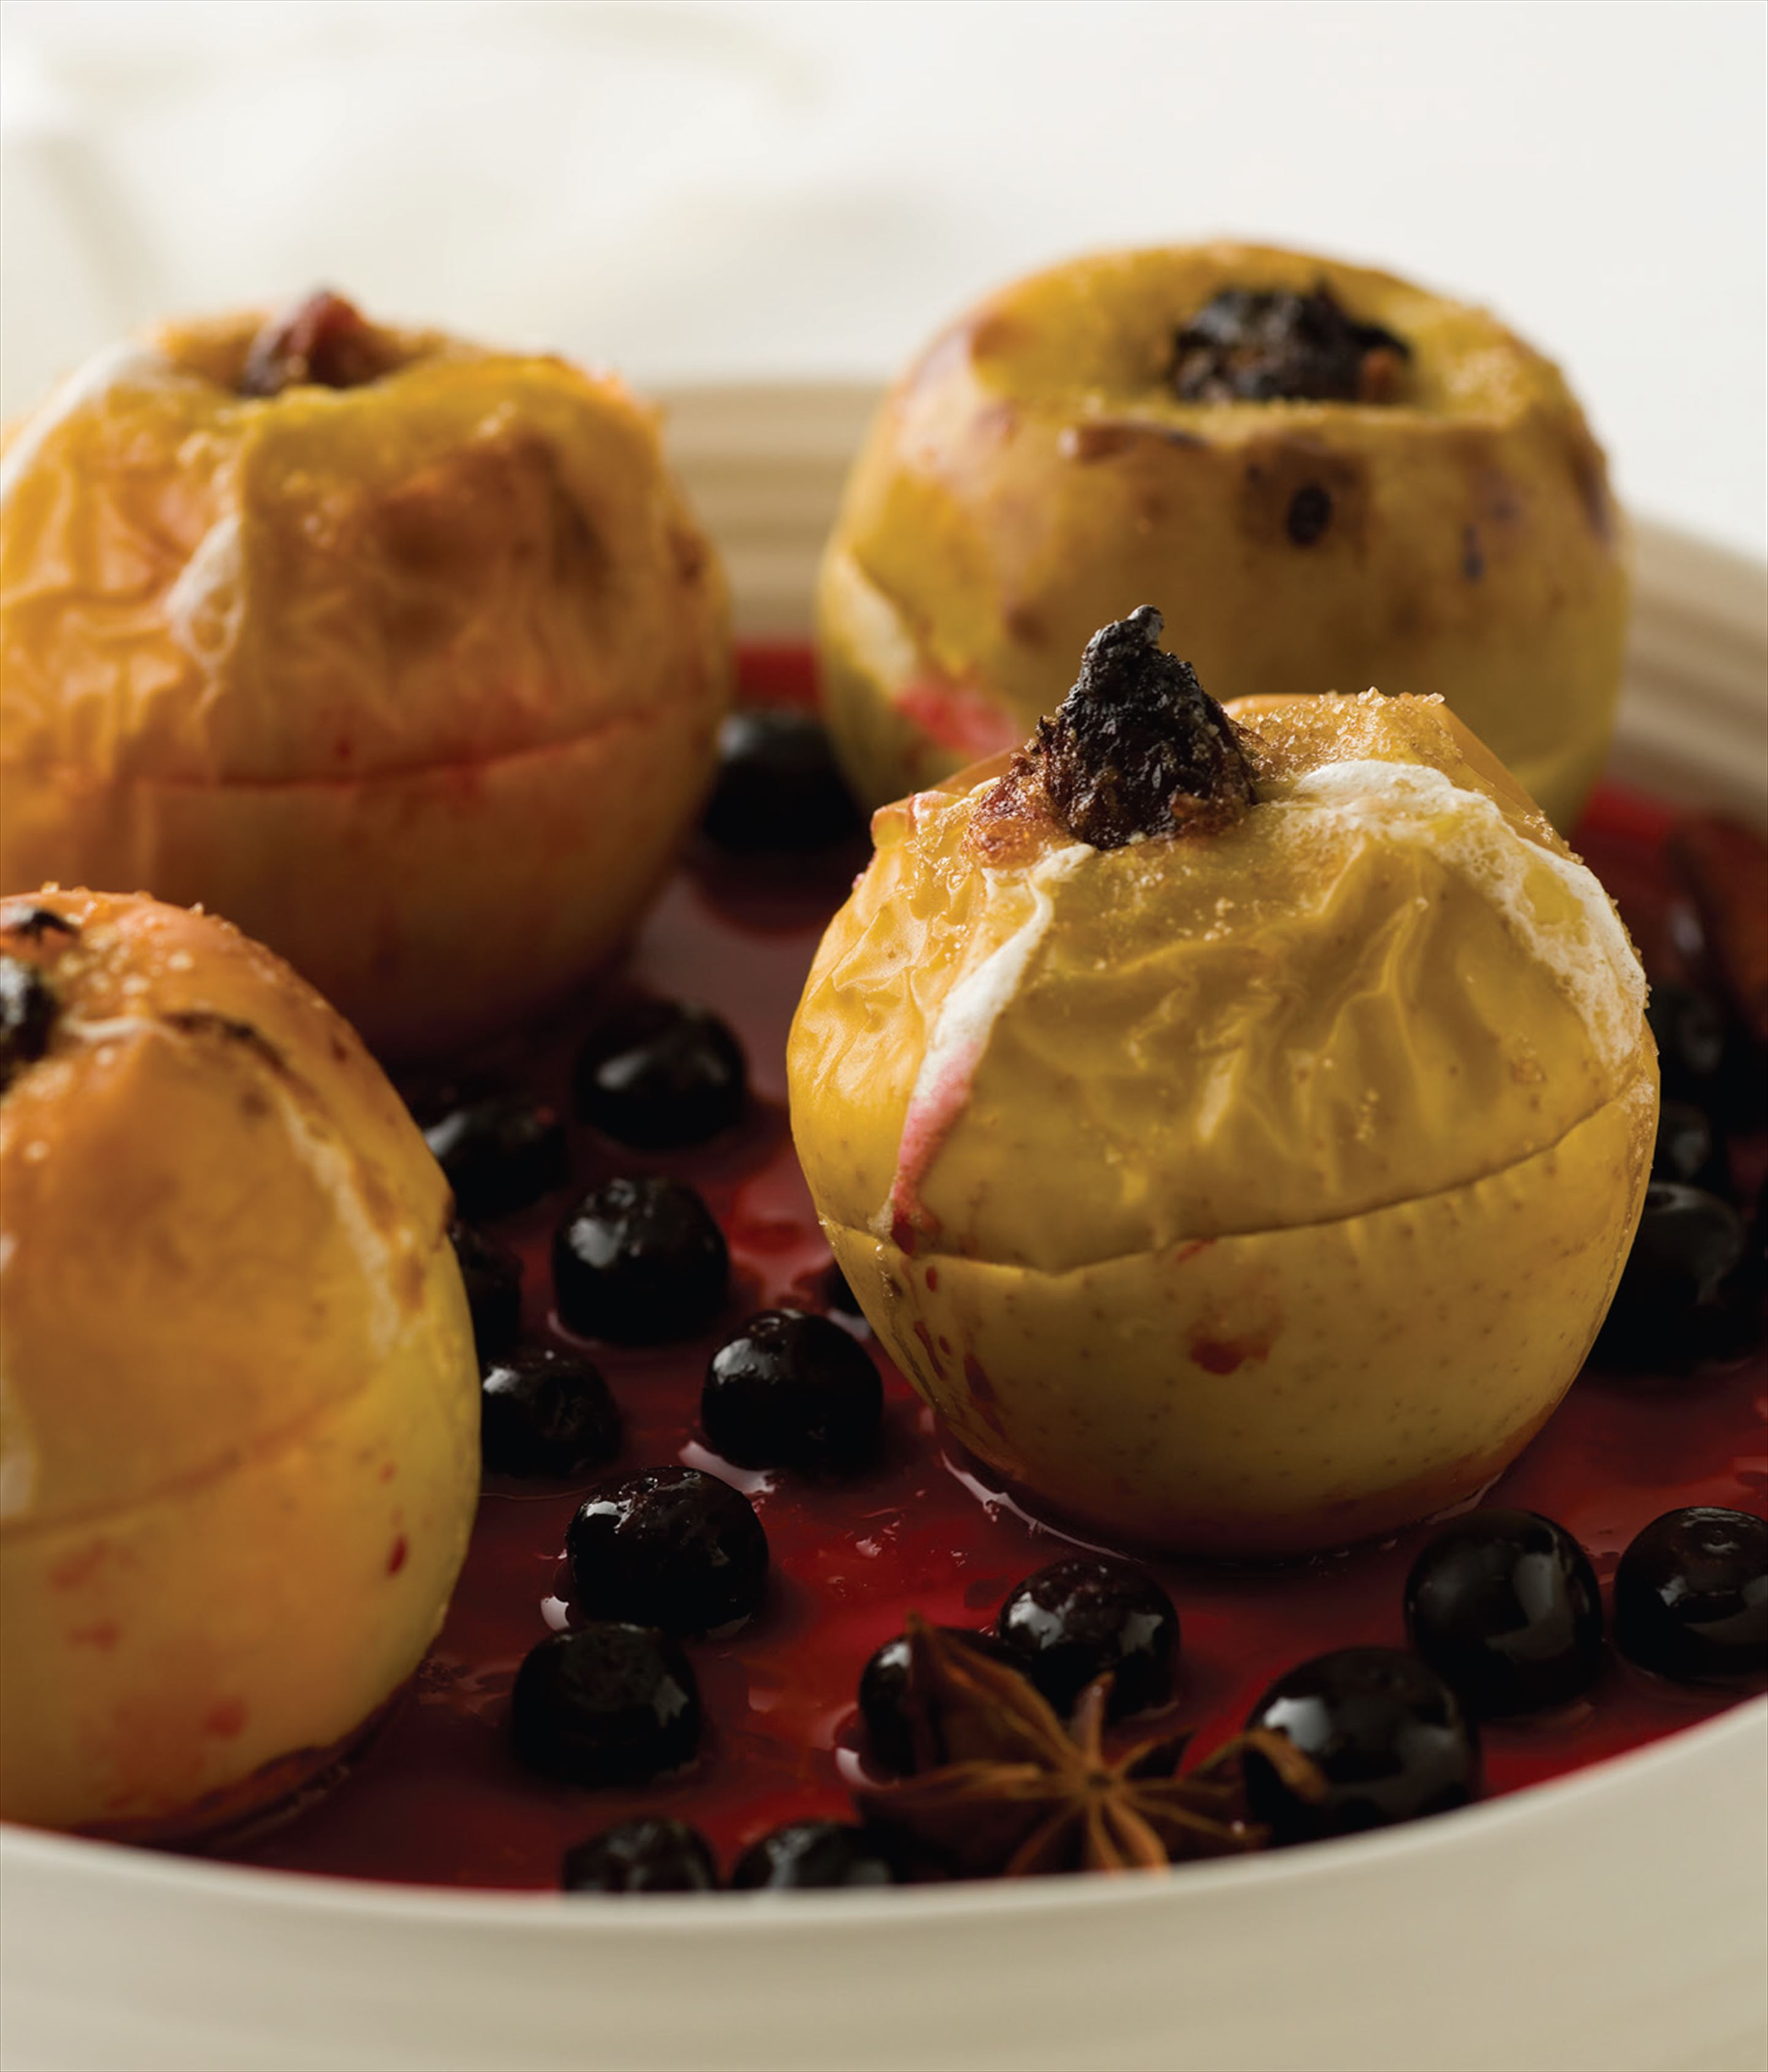 Baked apples with blueberry compote